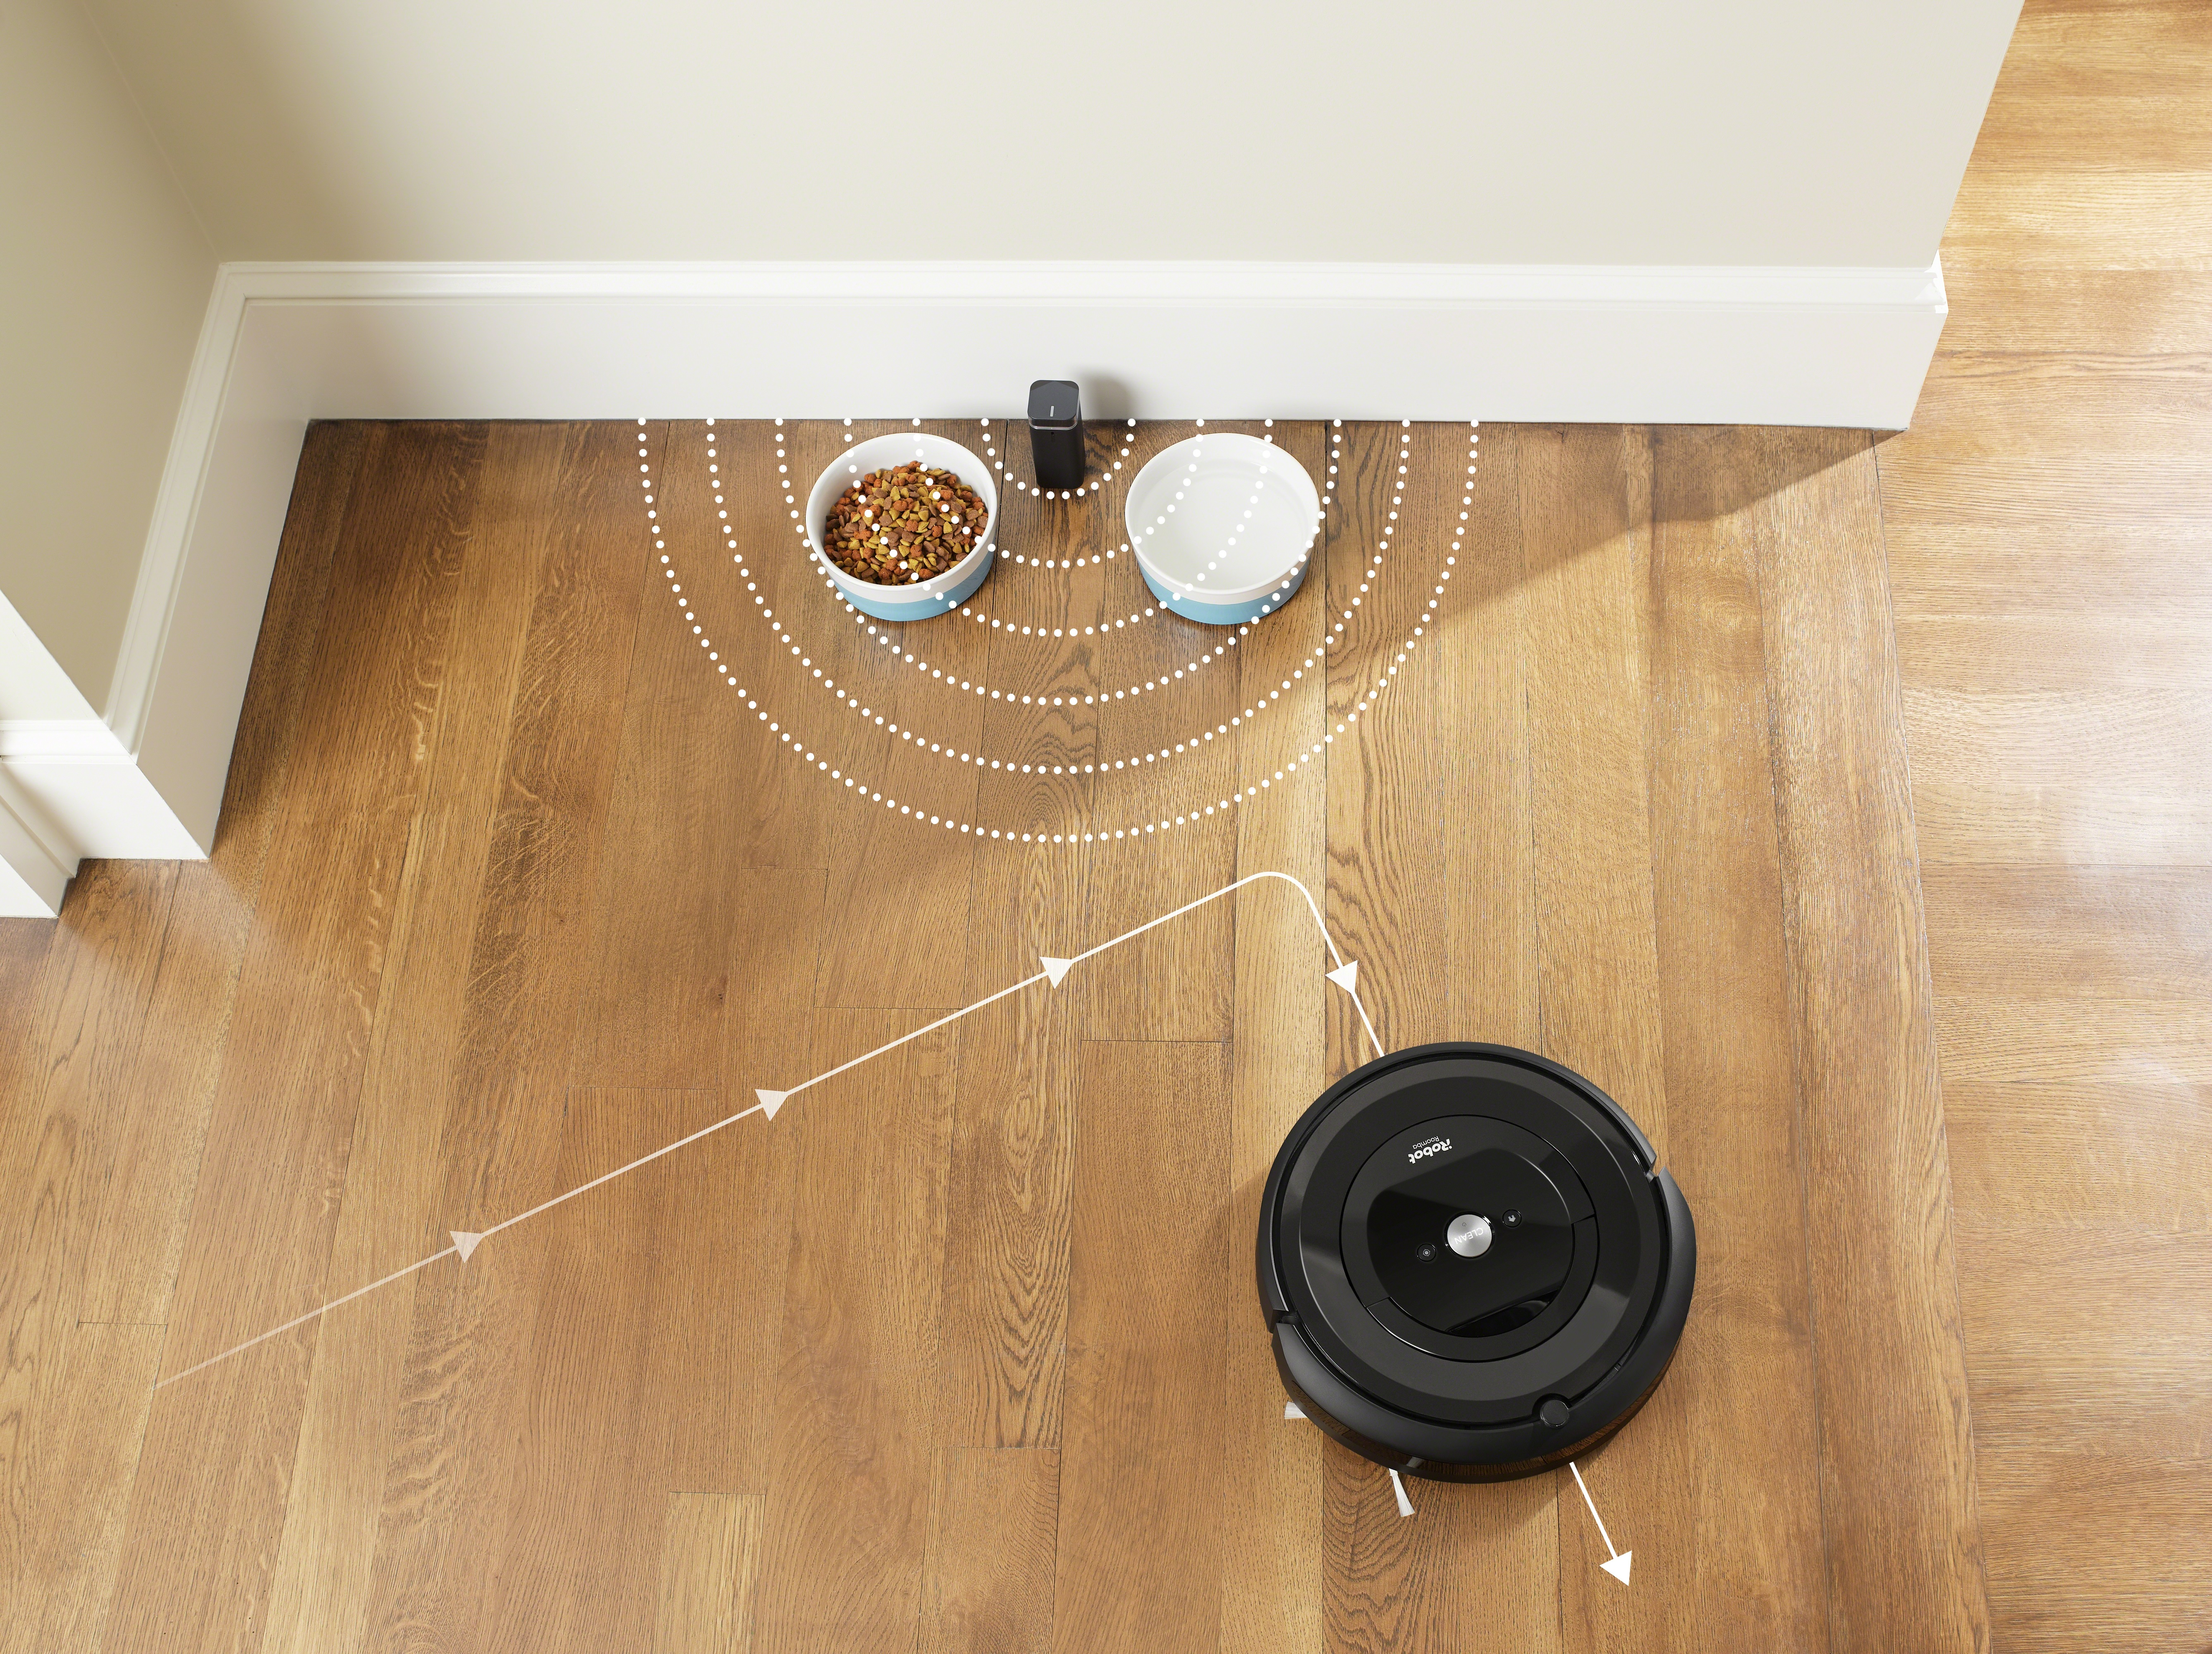 289381 roomba%20e5 virtual%20wall 0de744 original 1536248082